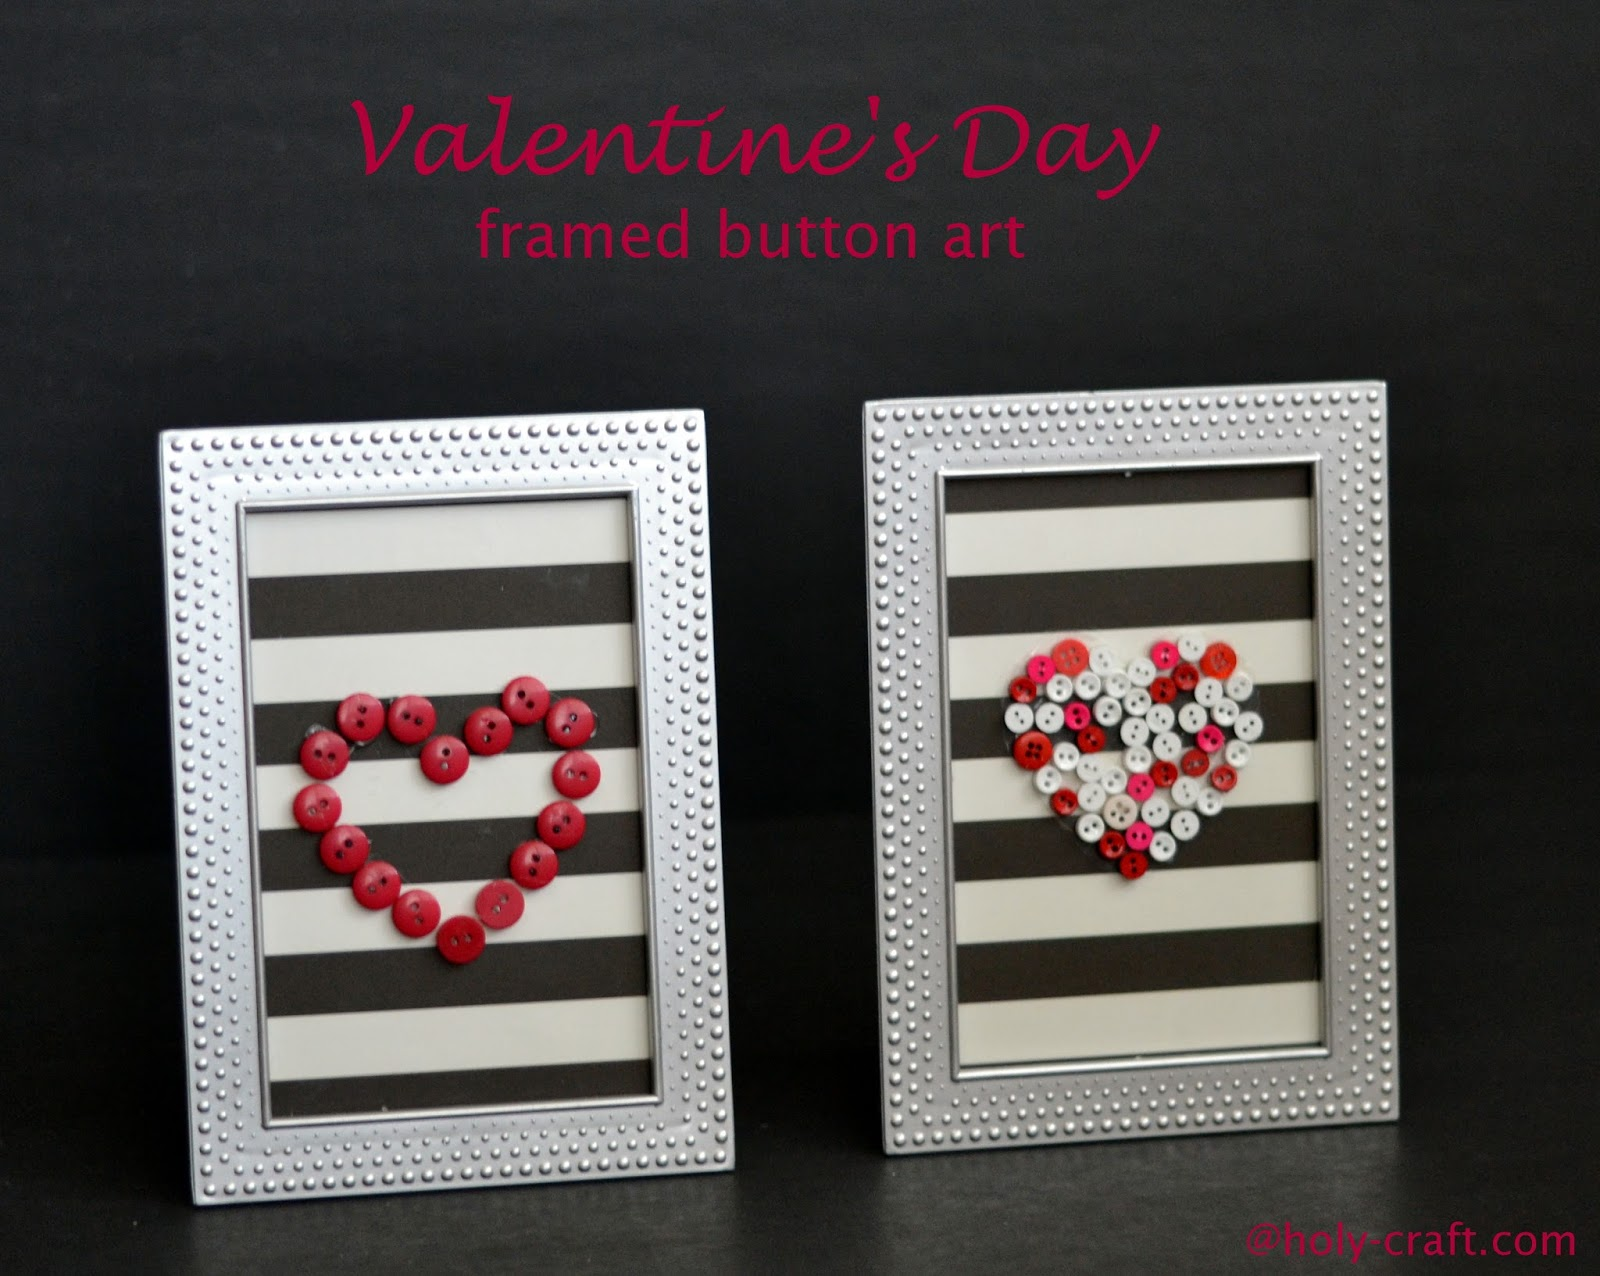 Forum on this topic: How to Make a Valentines Photo Frame , how-to-make-a-valentines-photo-frame/